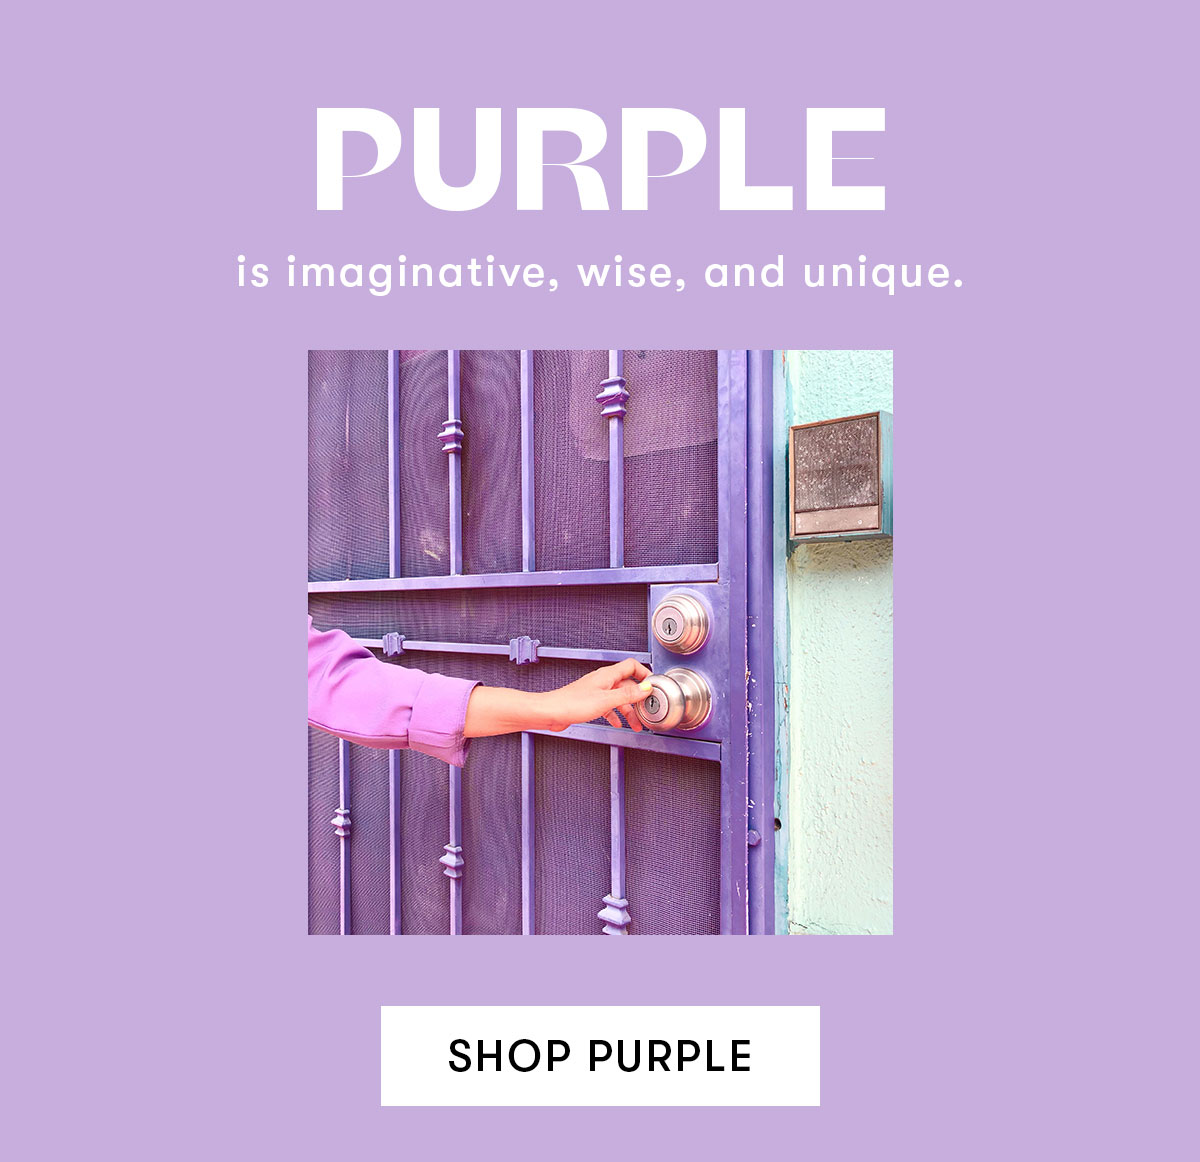 Purple is imaginative, wise, and unique.